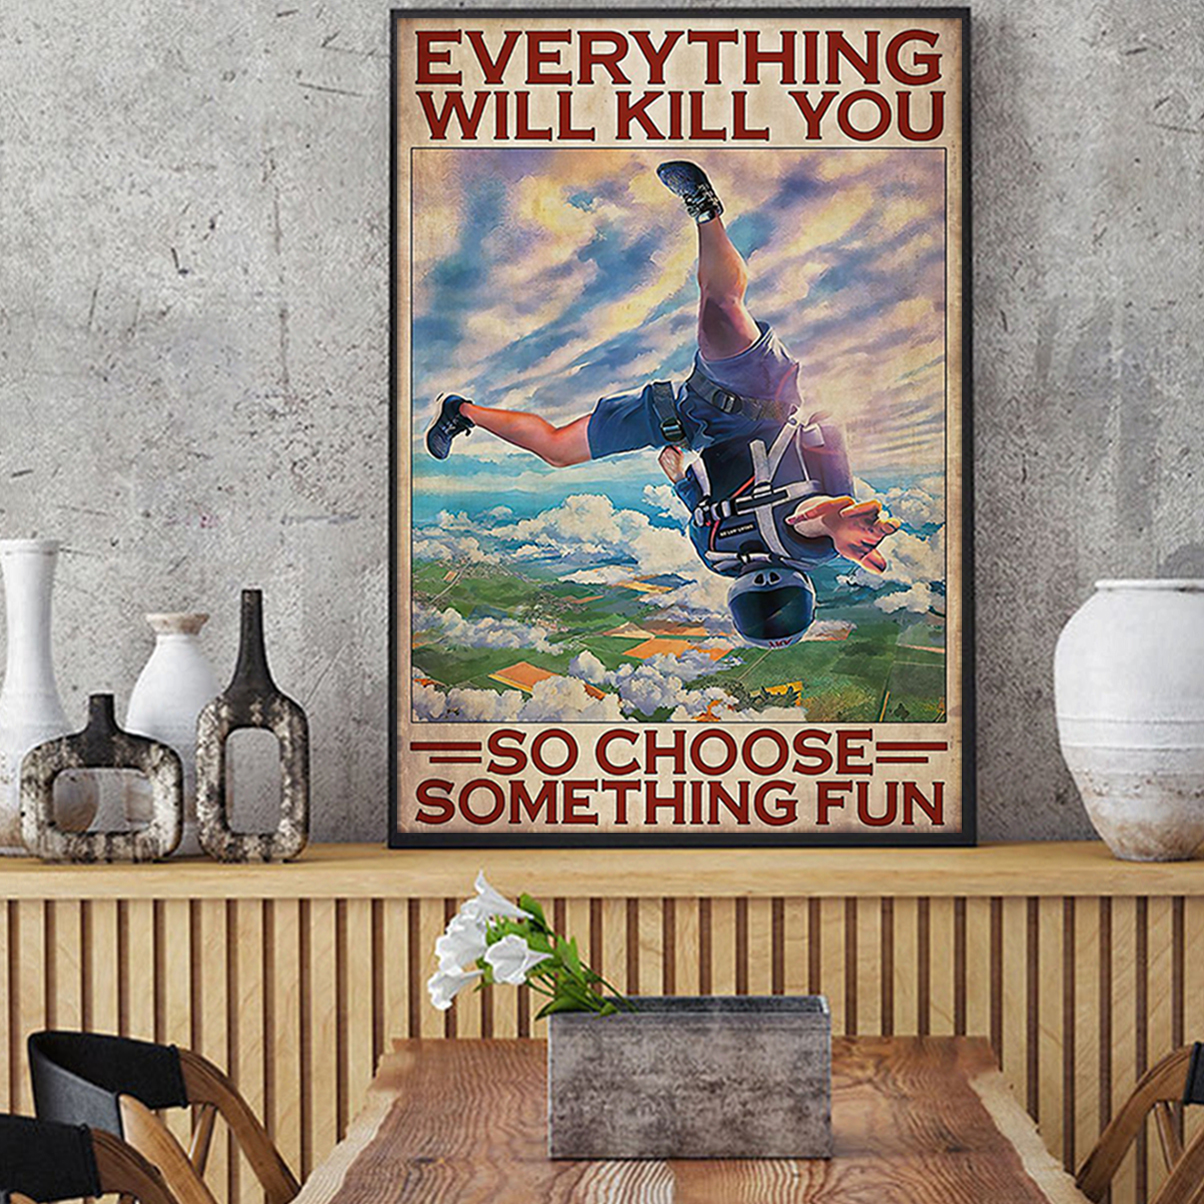 Skydiving everything will kill you so choose something fun poster A3